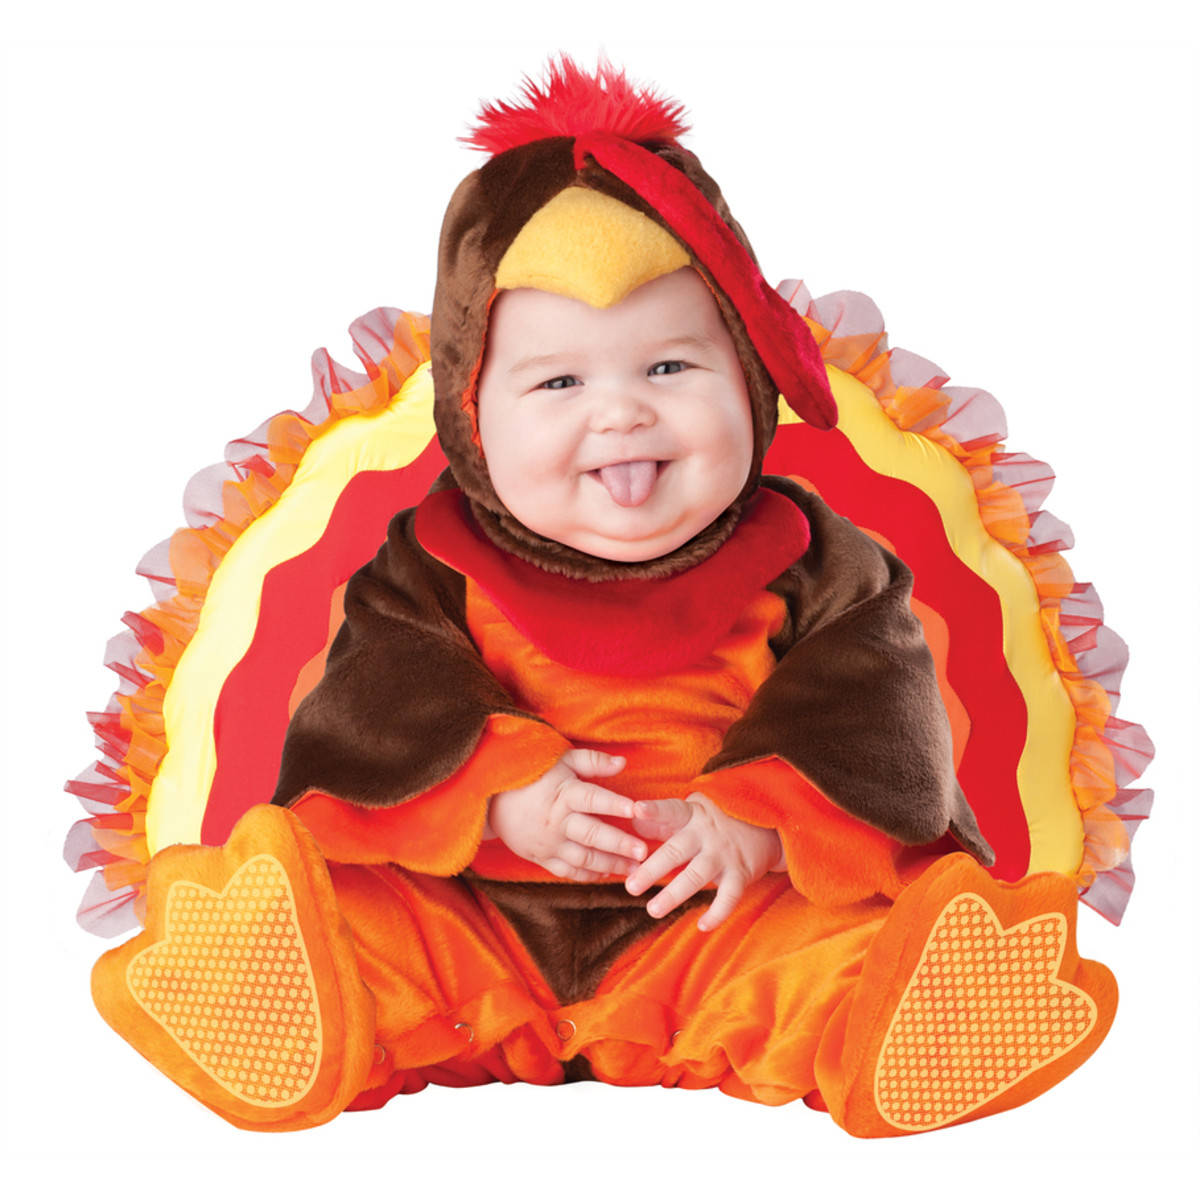 Baby Dressed as a Turkey